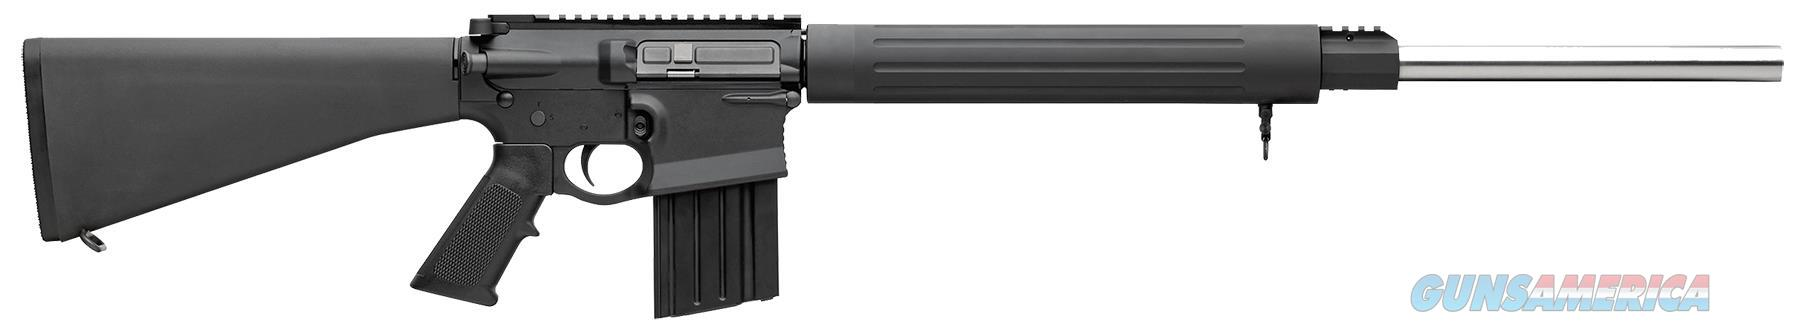 "DPMSPANTHER ARMS G2 BULL 24"" 308/16"" 1-30RD 60236  Guns > Rifles > DPMS - Panther Arms > Complete Rifle"